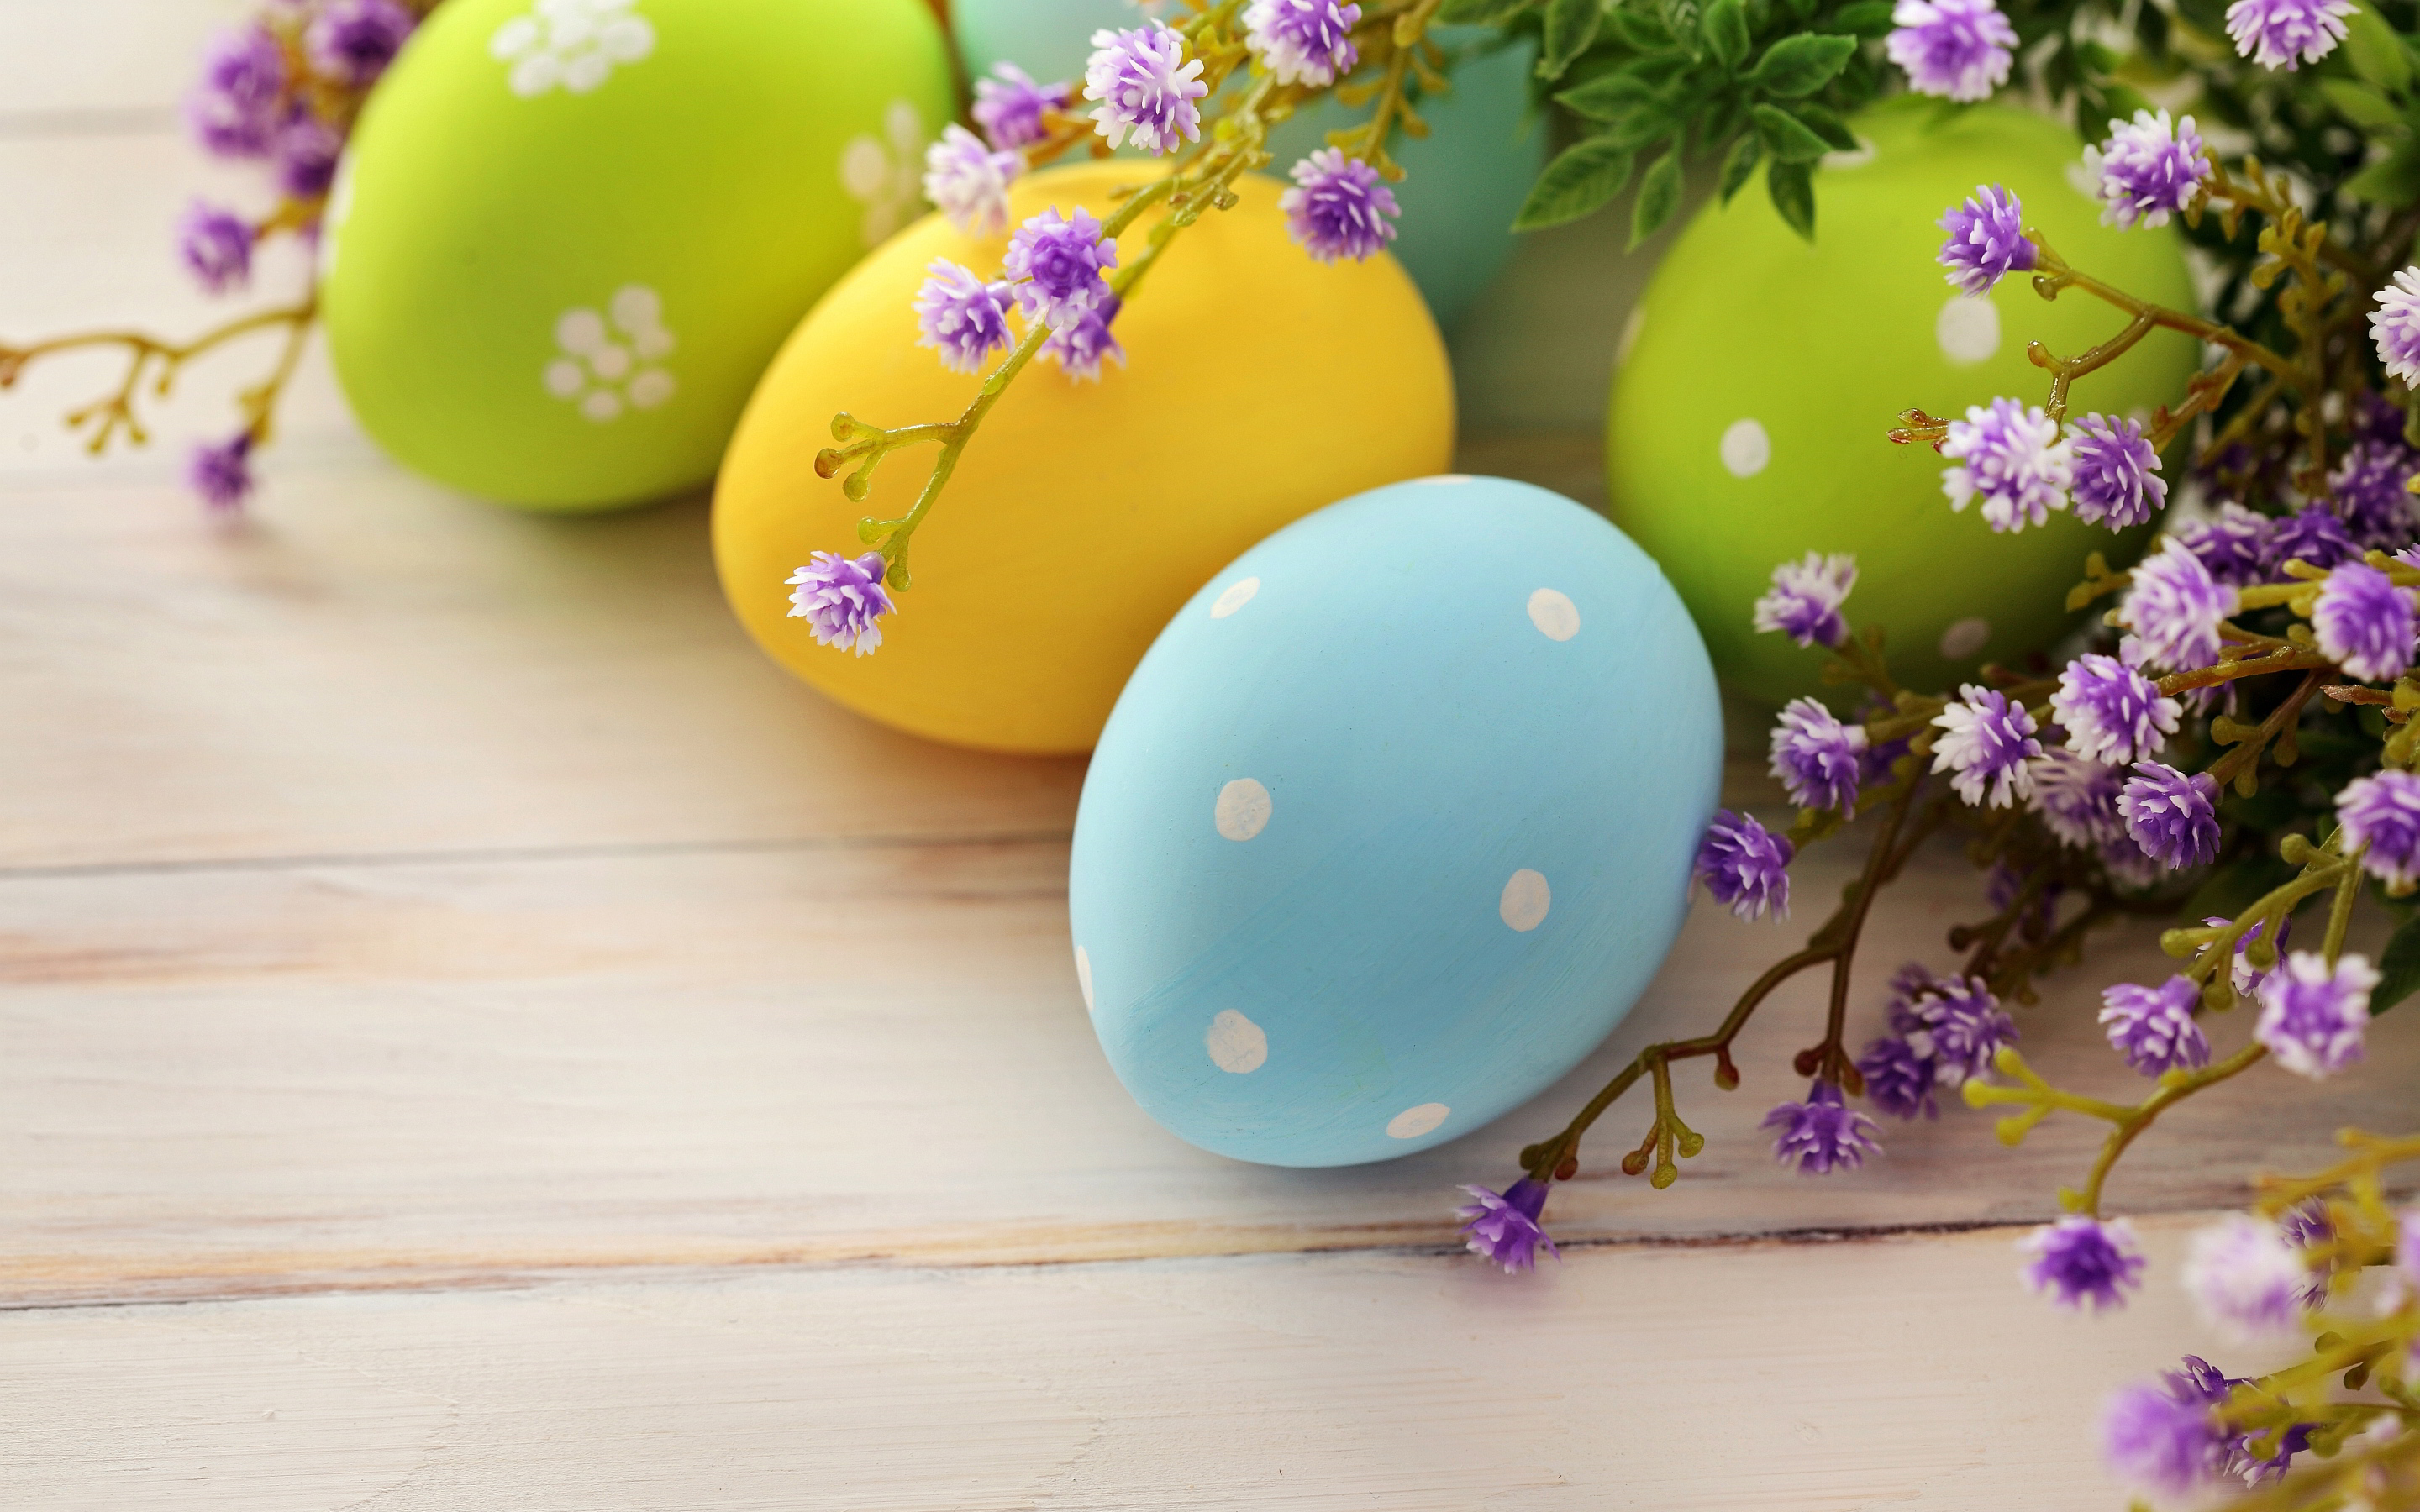 Amazing Beautiful Easter Eggs Wallpaper 44336